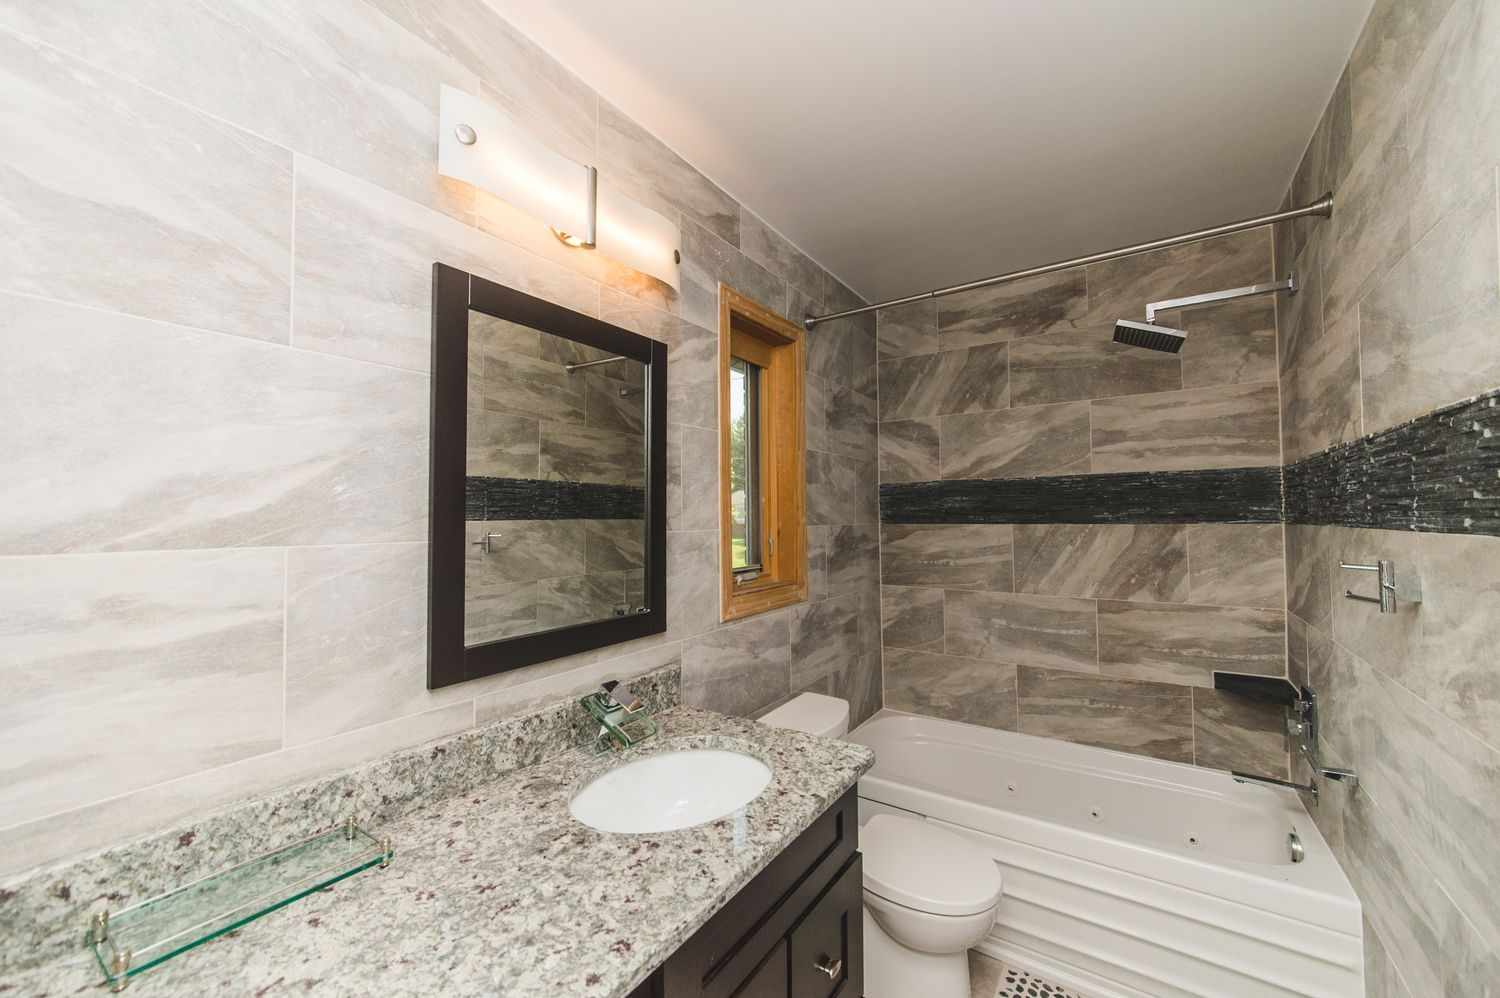 Bathroom Renovation Silver Spring MD Bathroom Remodeling By Euro - Bathroom renovation company